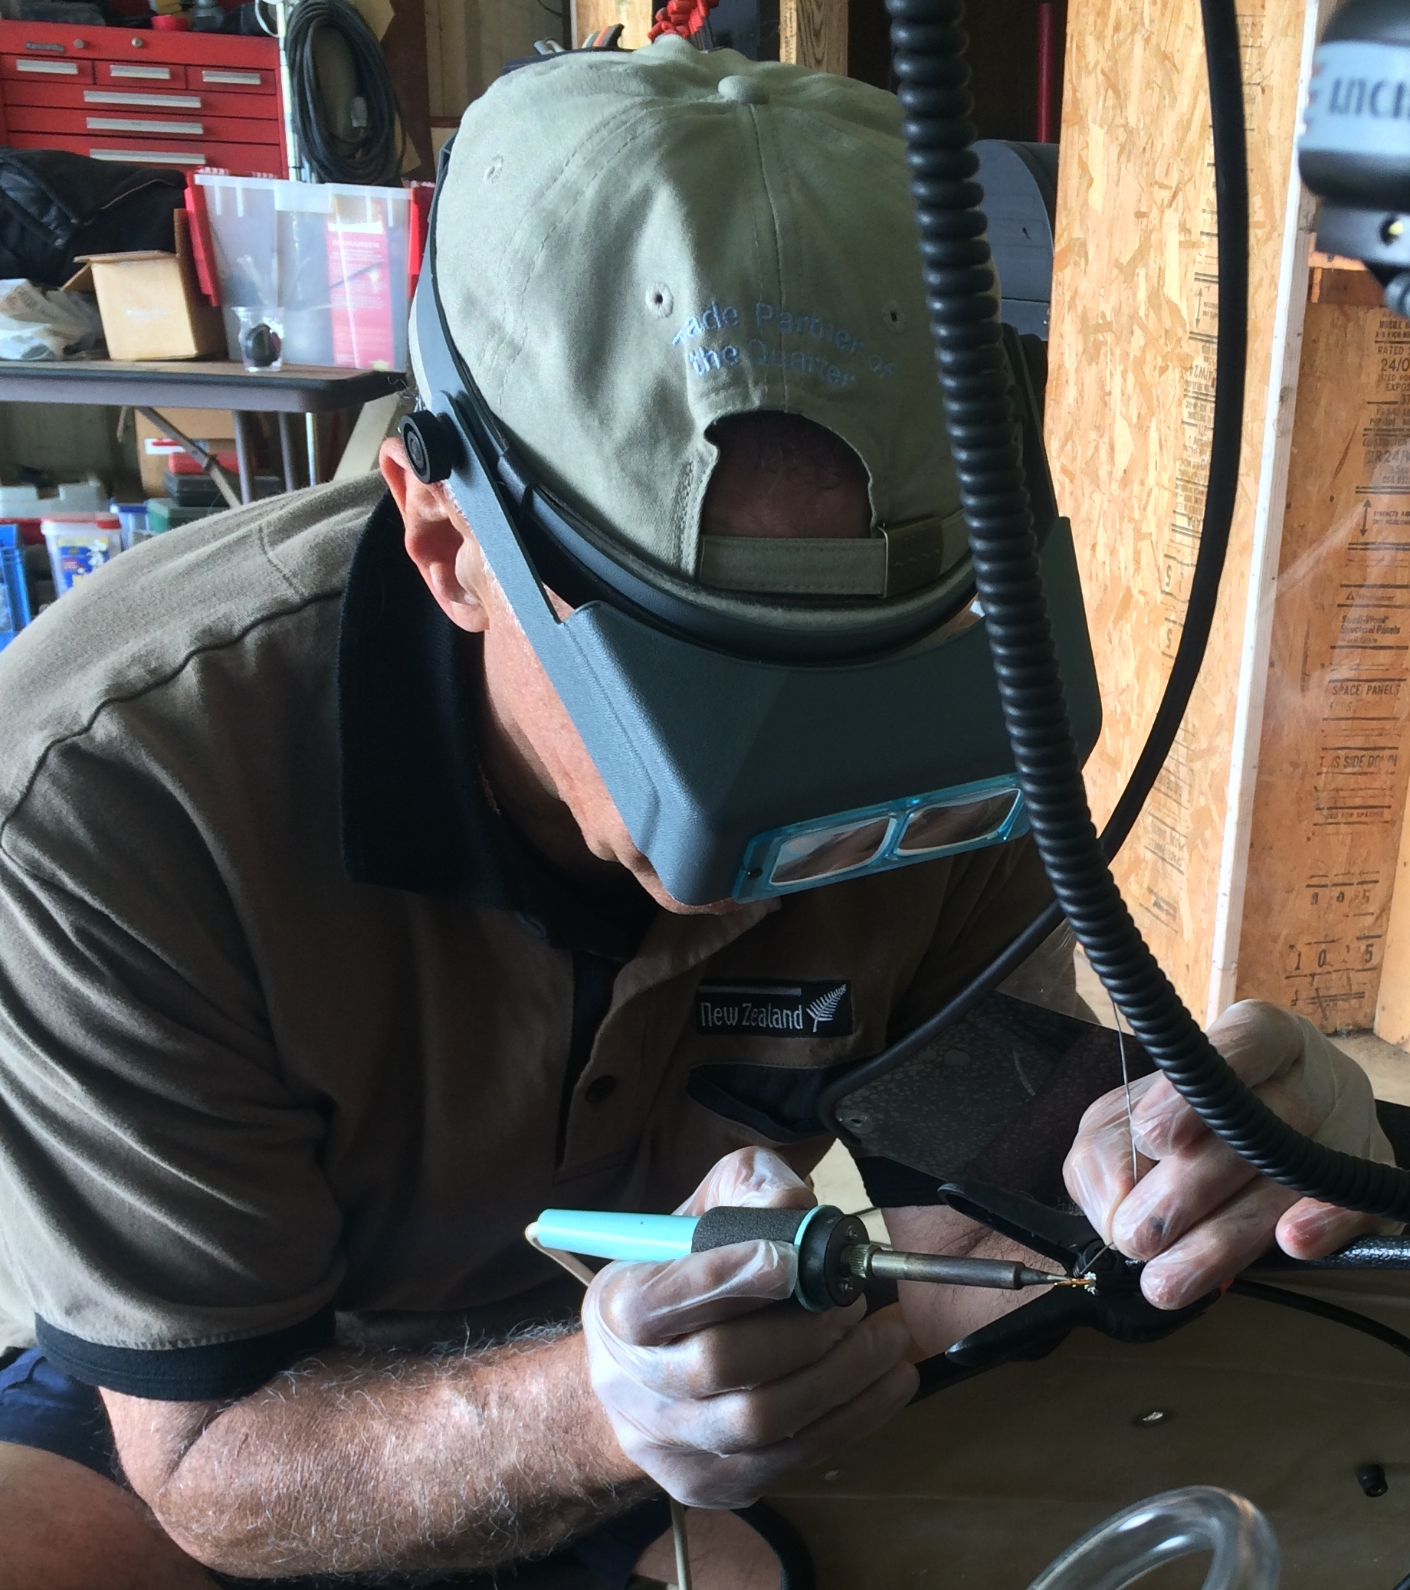 Manouch solders a wire during the radio installation.